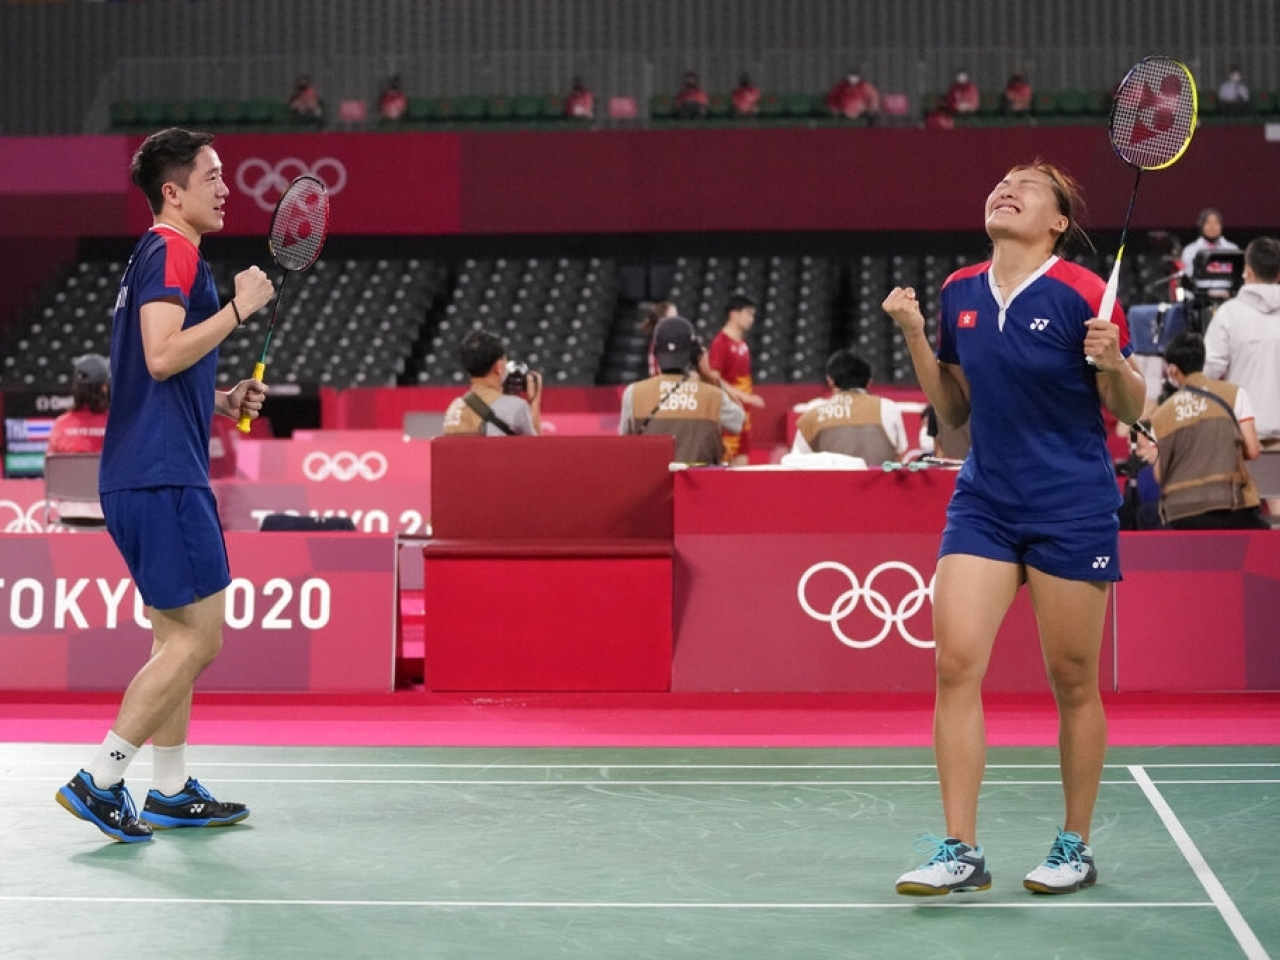 Tse Ying-suet and Tang Chun-man celebrate after winning their mixed doubles quarterfinal badminton match against Britain's Marcus Ellis and Lauren Smith. Photo: AFP